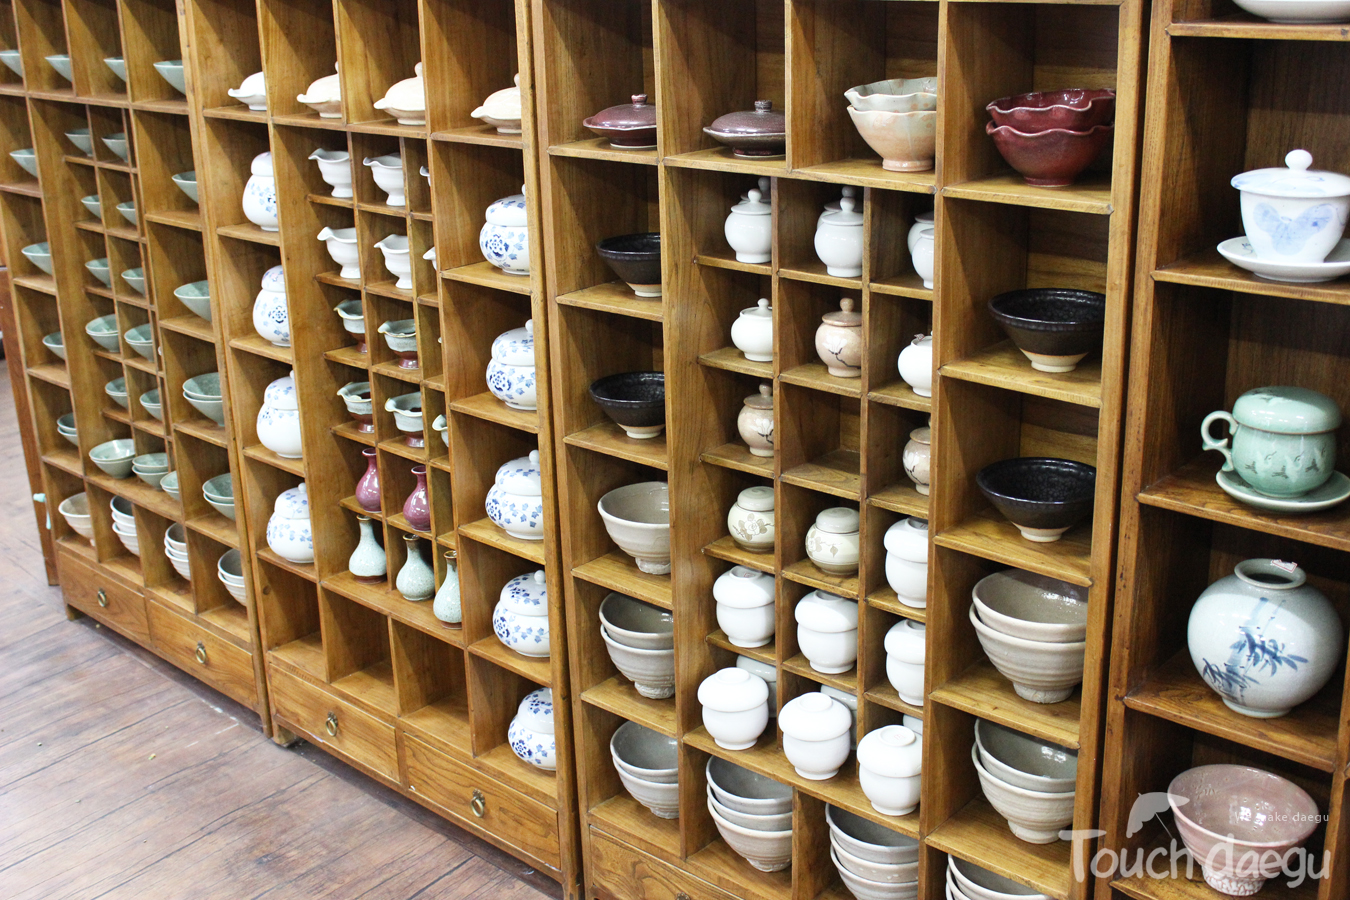 There are many tea cups on the wooden shelves